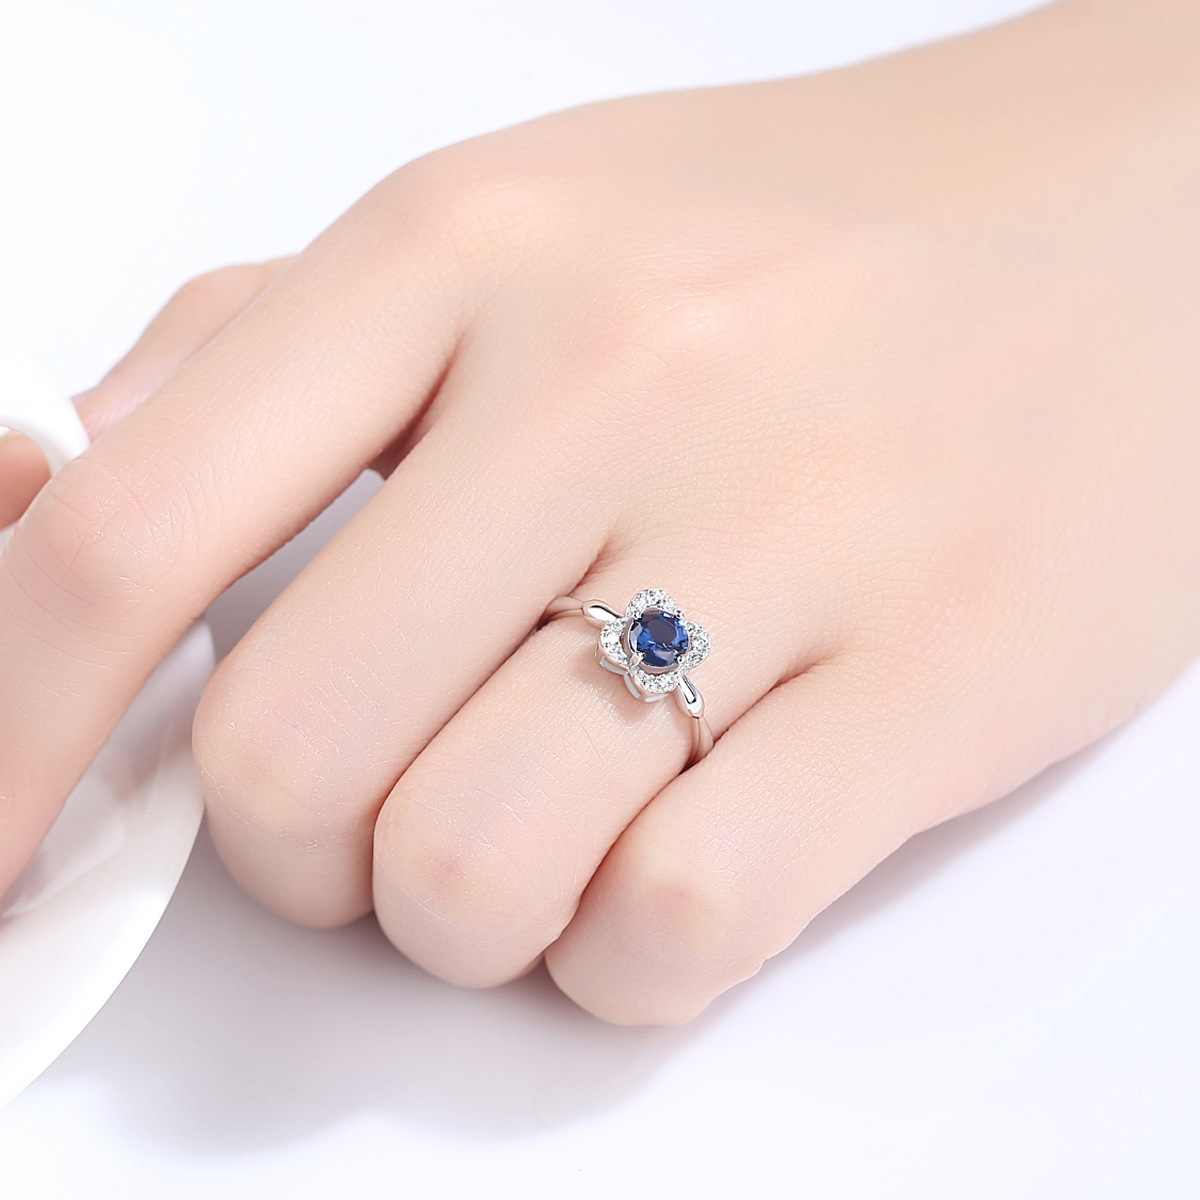 Luxury Blue Sapphire Ring Created Engagement Ring for Women ...